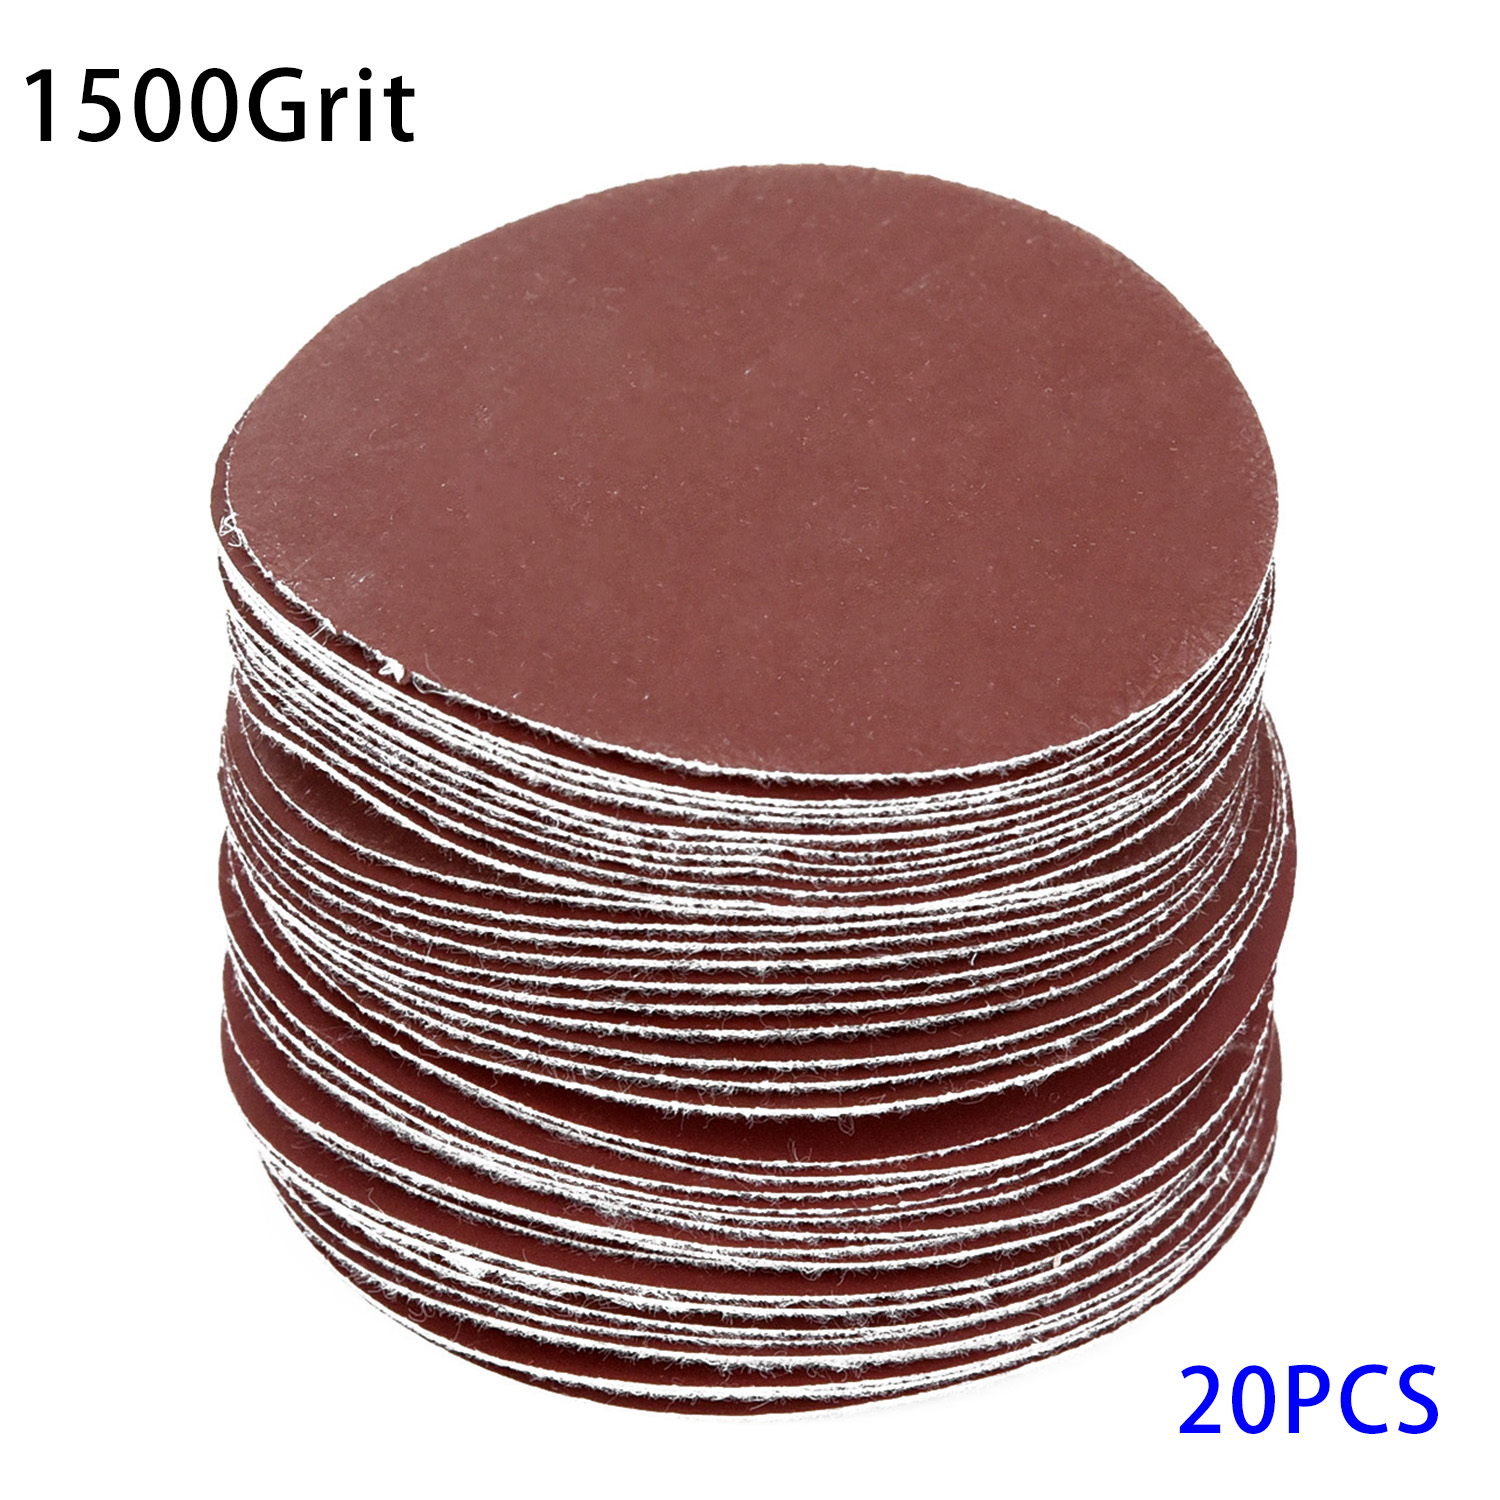 New 20pcs/set 3 Inch 40~3000Grit Sander Discs Sanding Polishing Pads Sandpapers